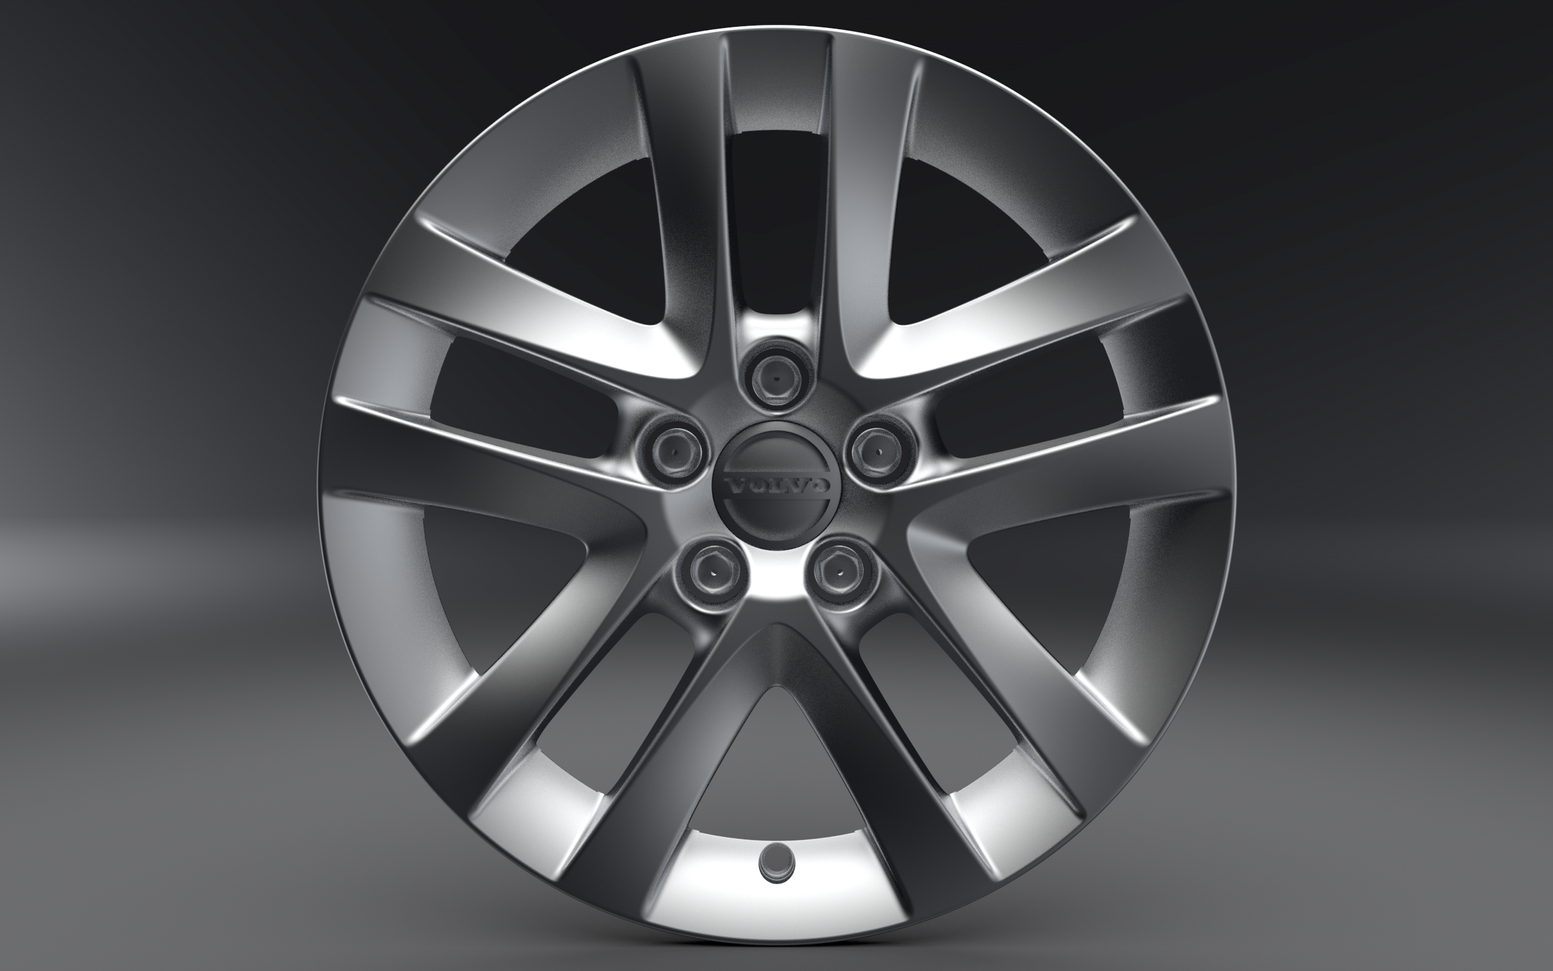 Volvo-Rim-Front.N1A.png